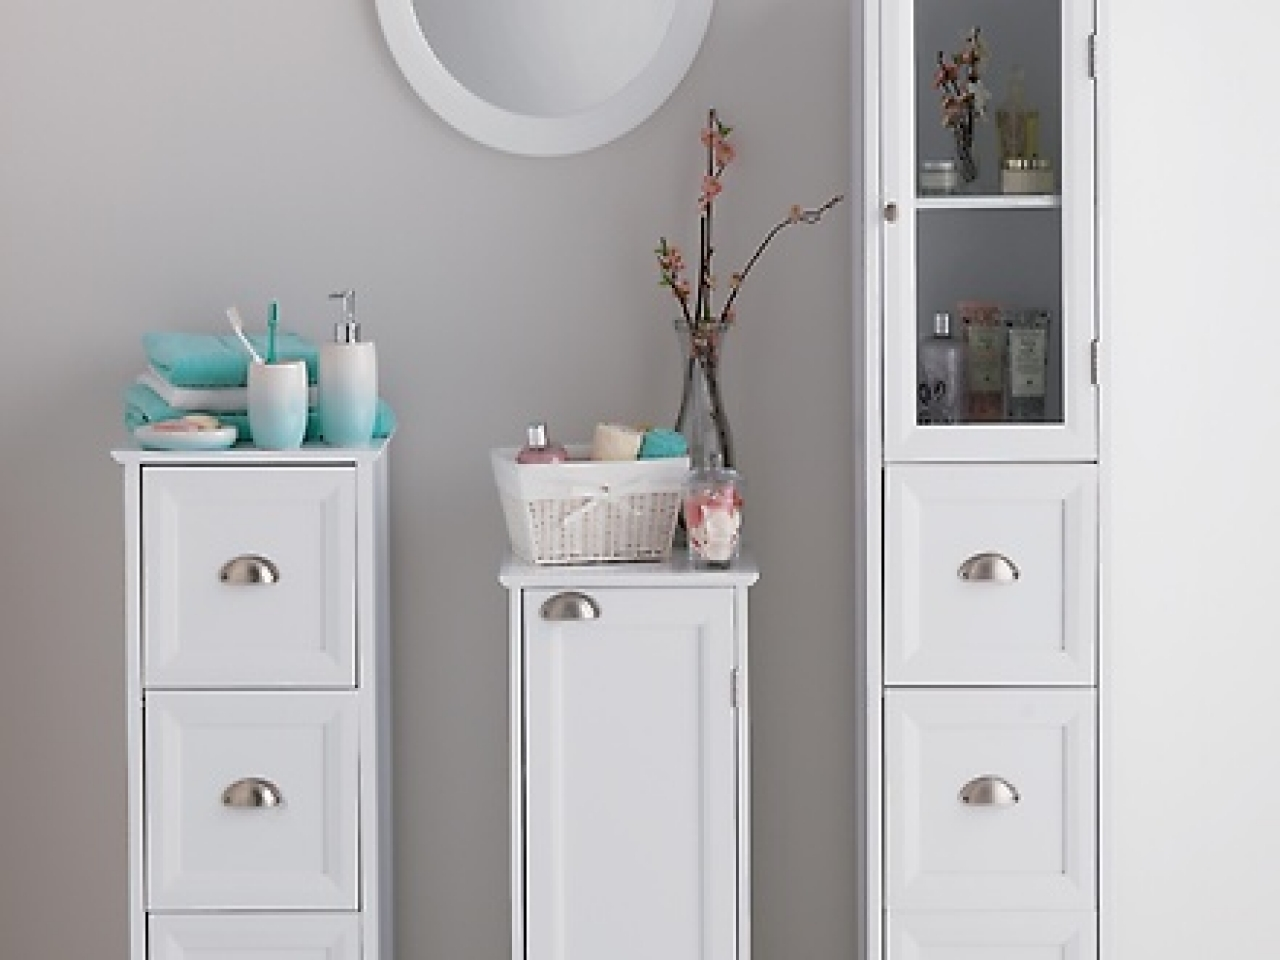 Storage Cabinets With Drawers For Bathroombathroom cabinets slim storage cabinet narrow bathroom storage